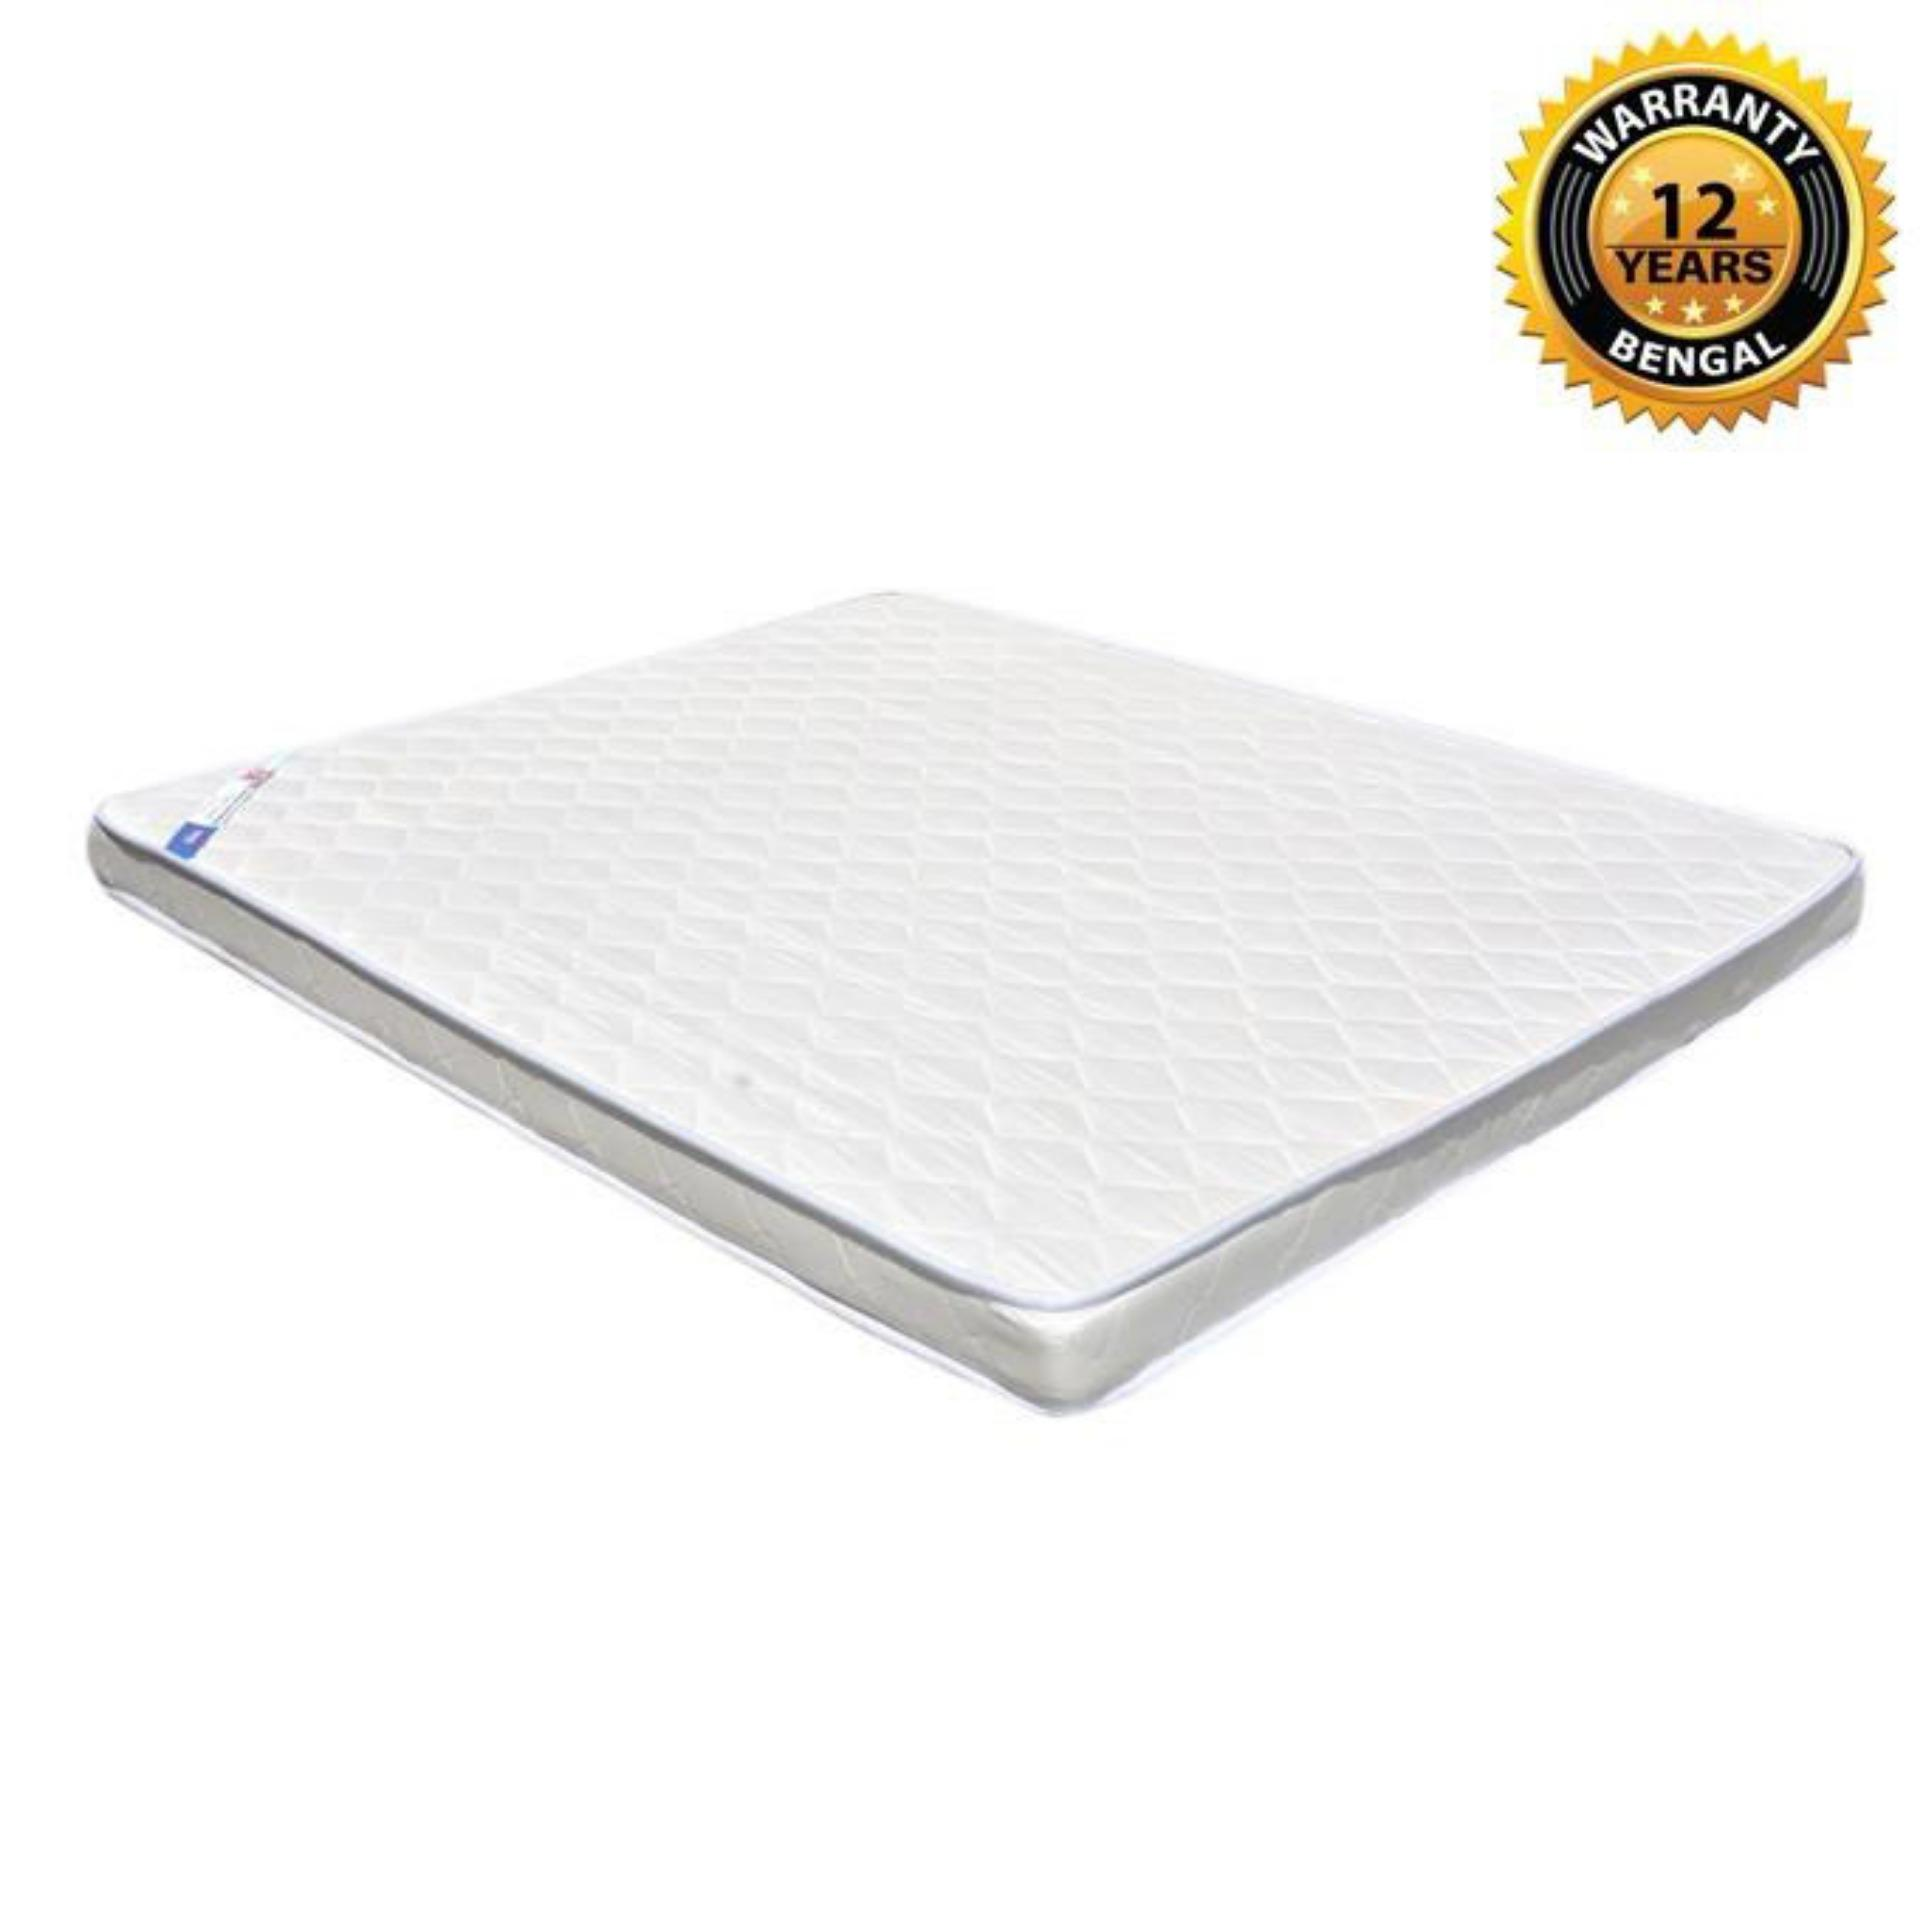 "Bengal Spring Mattress (84""x72""x6"") - White"